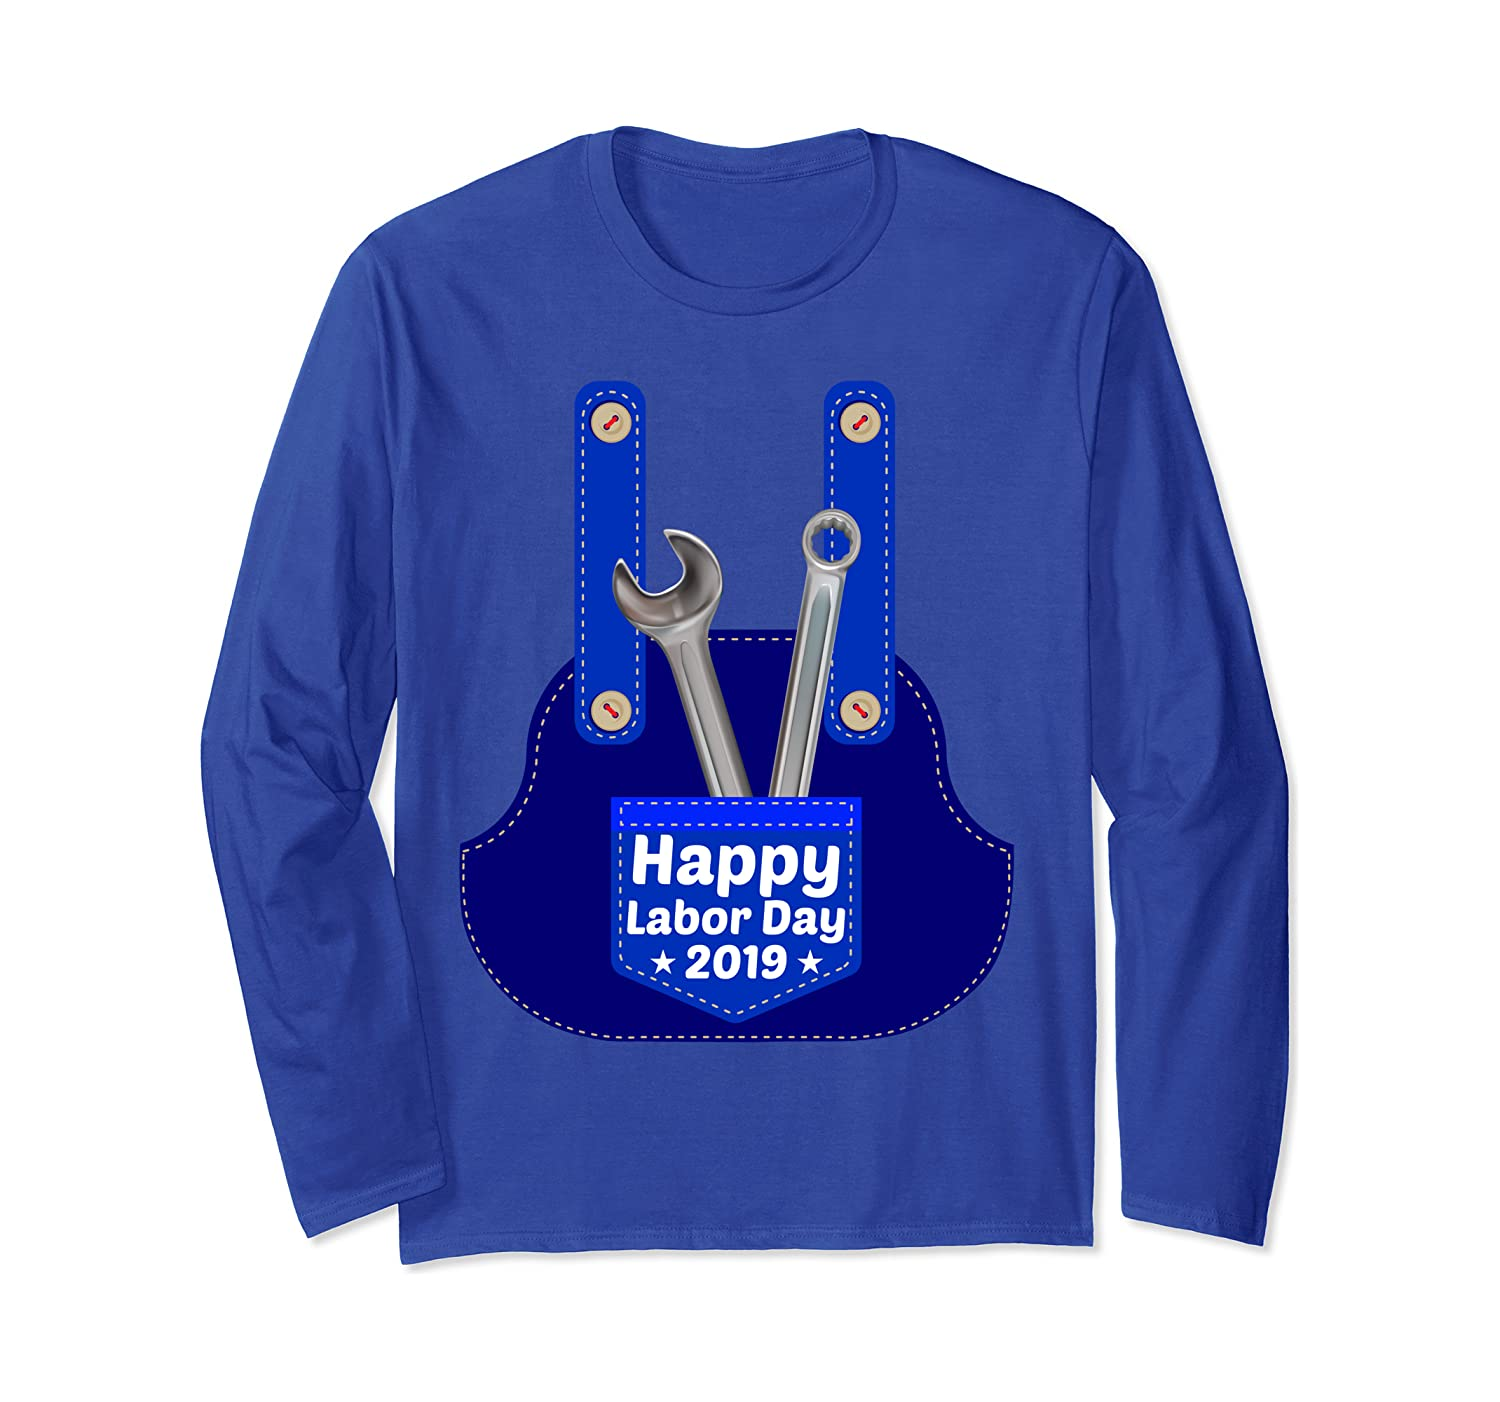 Happy Labor Day 2019 Costume Pocket With Wrench Spanner Fun Long Sleeve T-Shirt